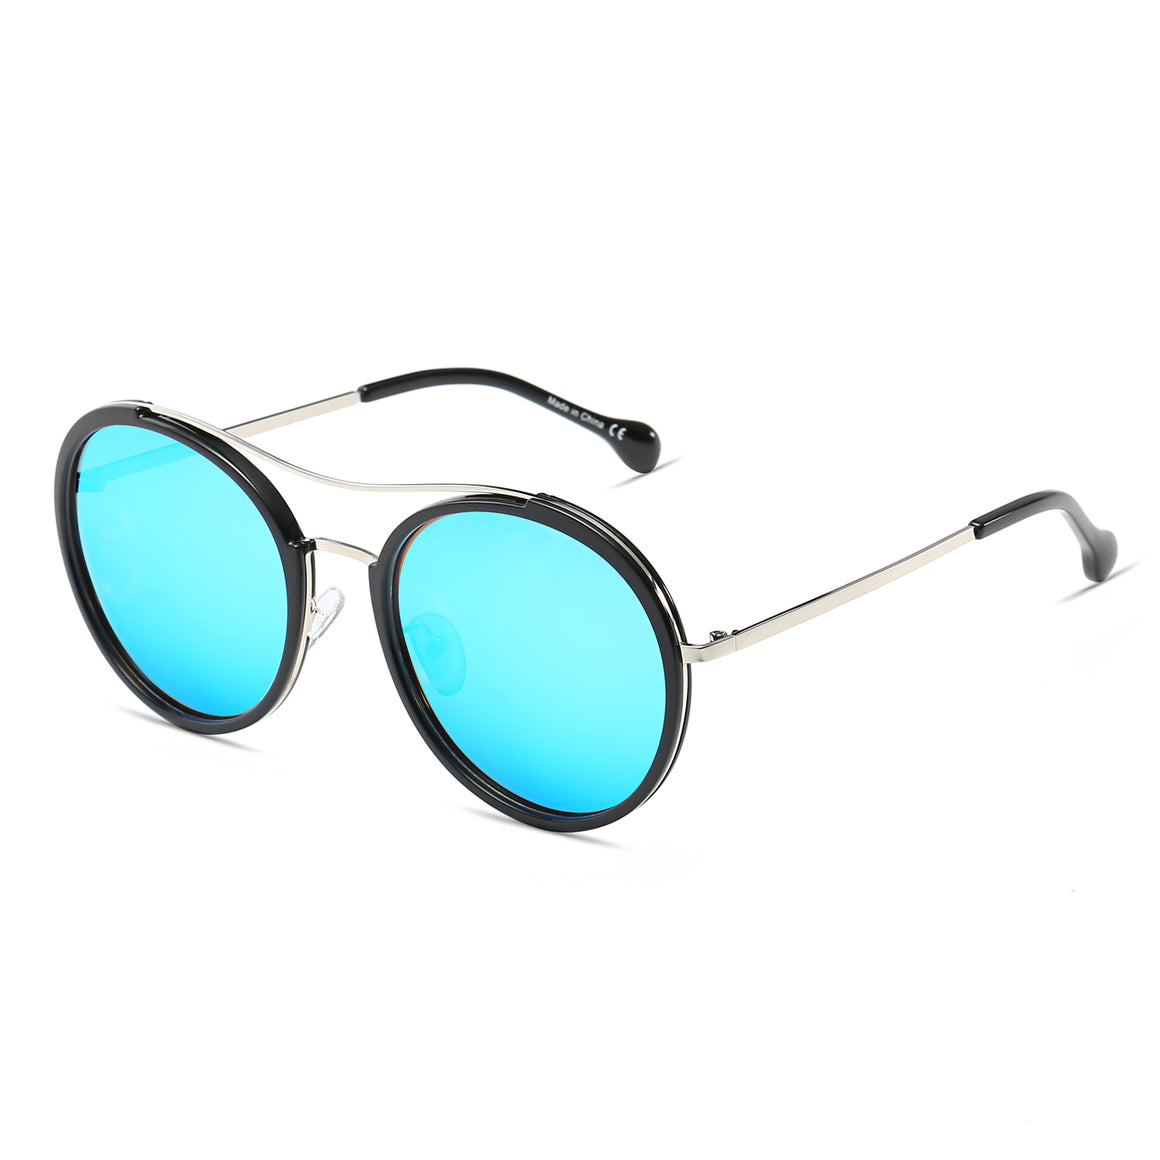 EMPORIA | CA14 - Retro Polarized Lens Circle Round Sunglasses